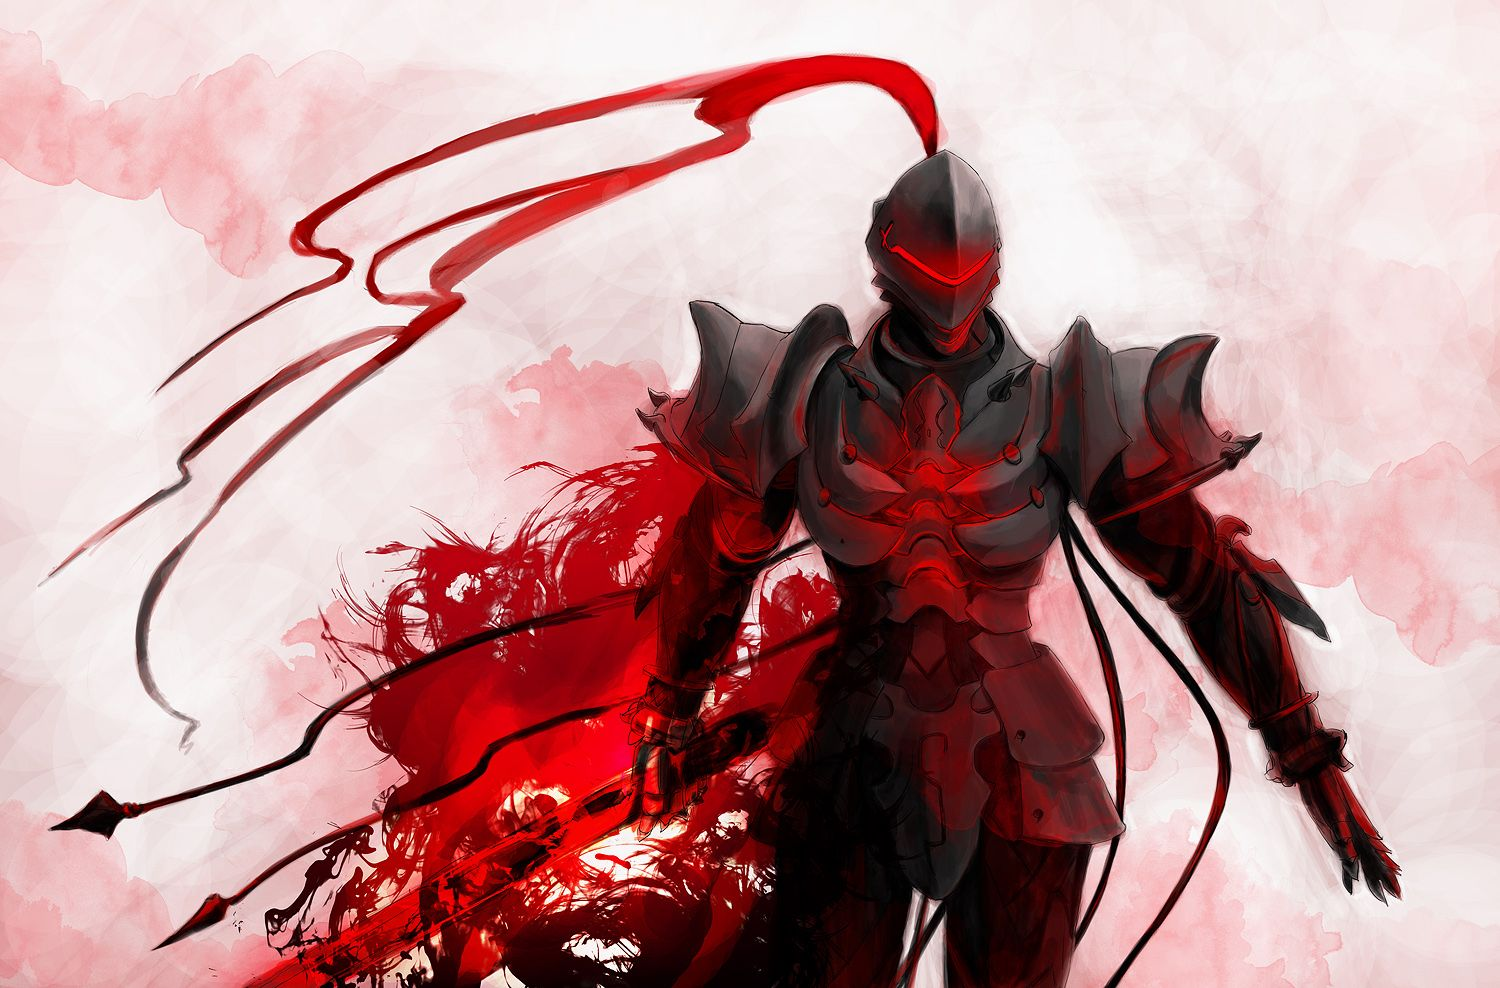 Berserker Fate Zero Background Anime Pinterest Fate